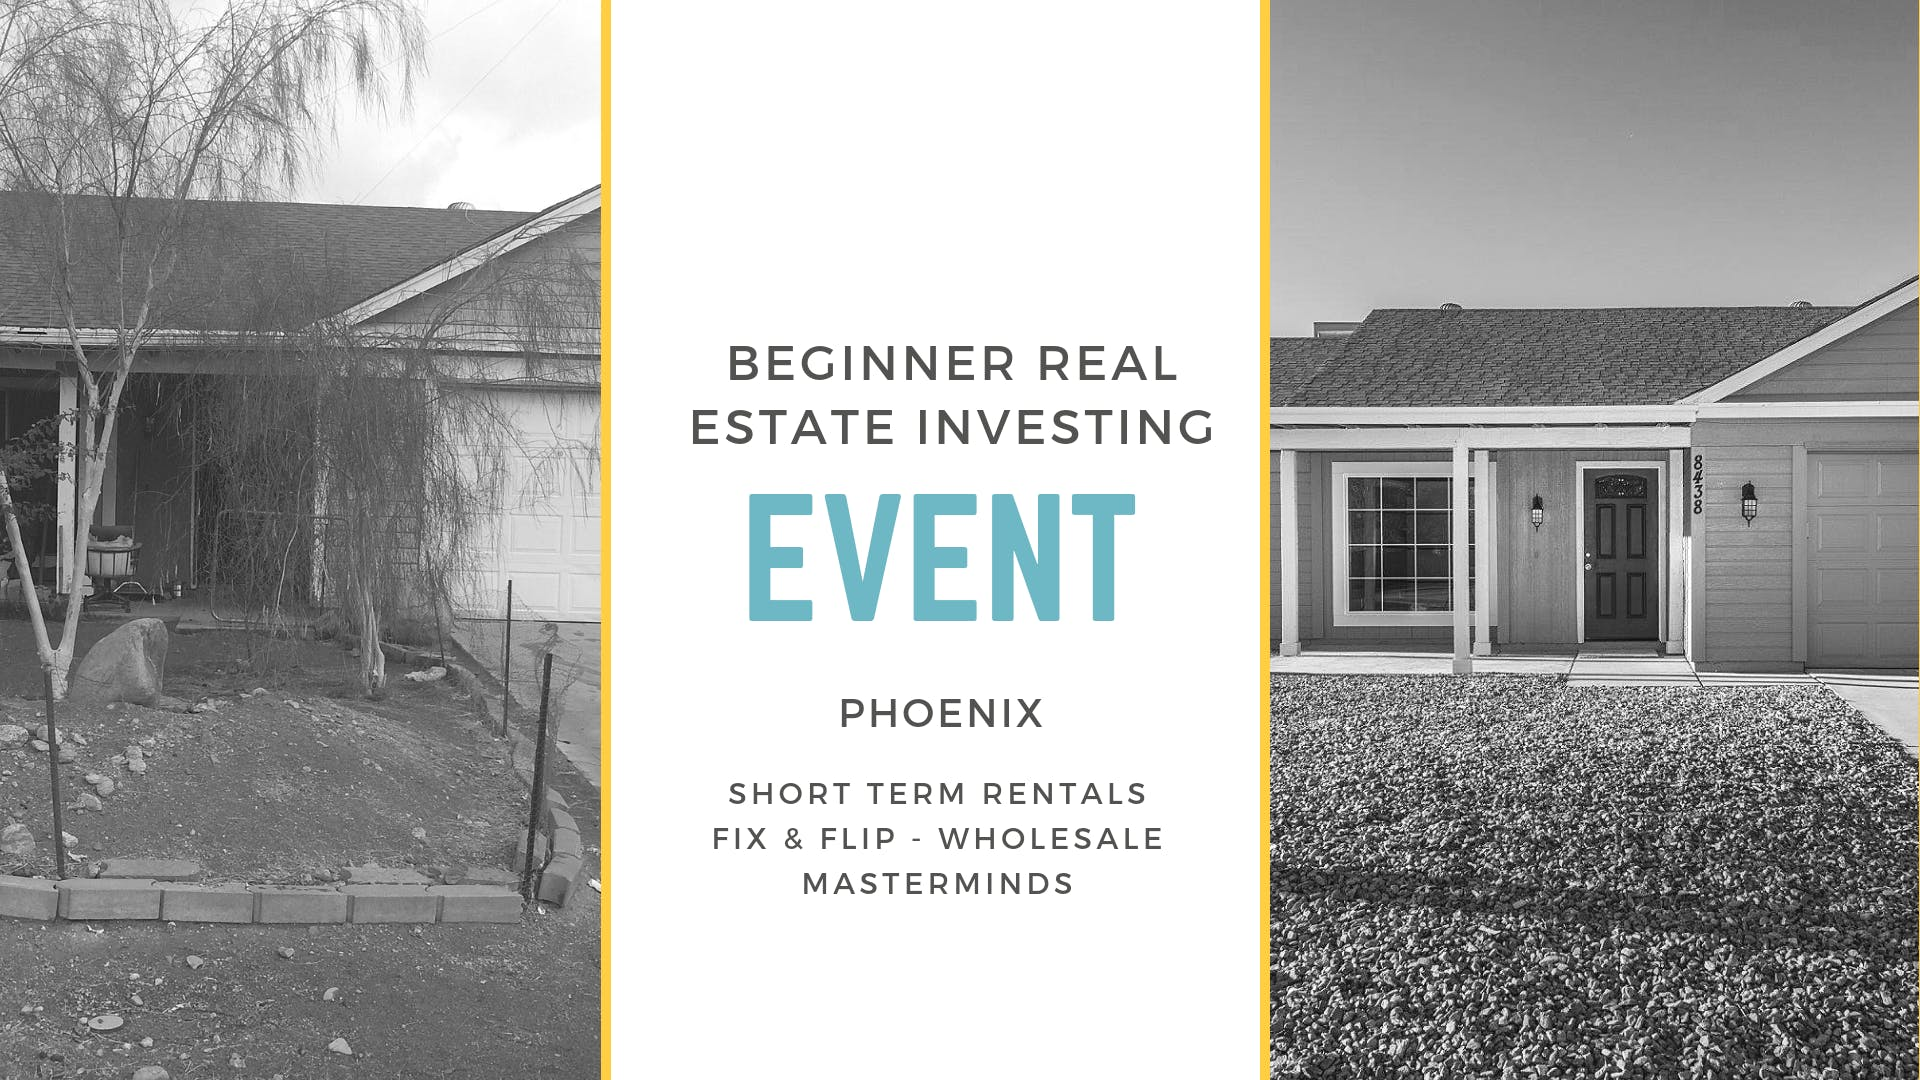 Beginner Real Estate Investor Event-Phoenix